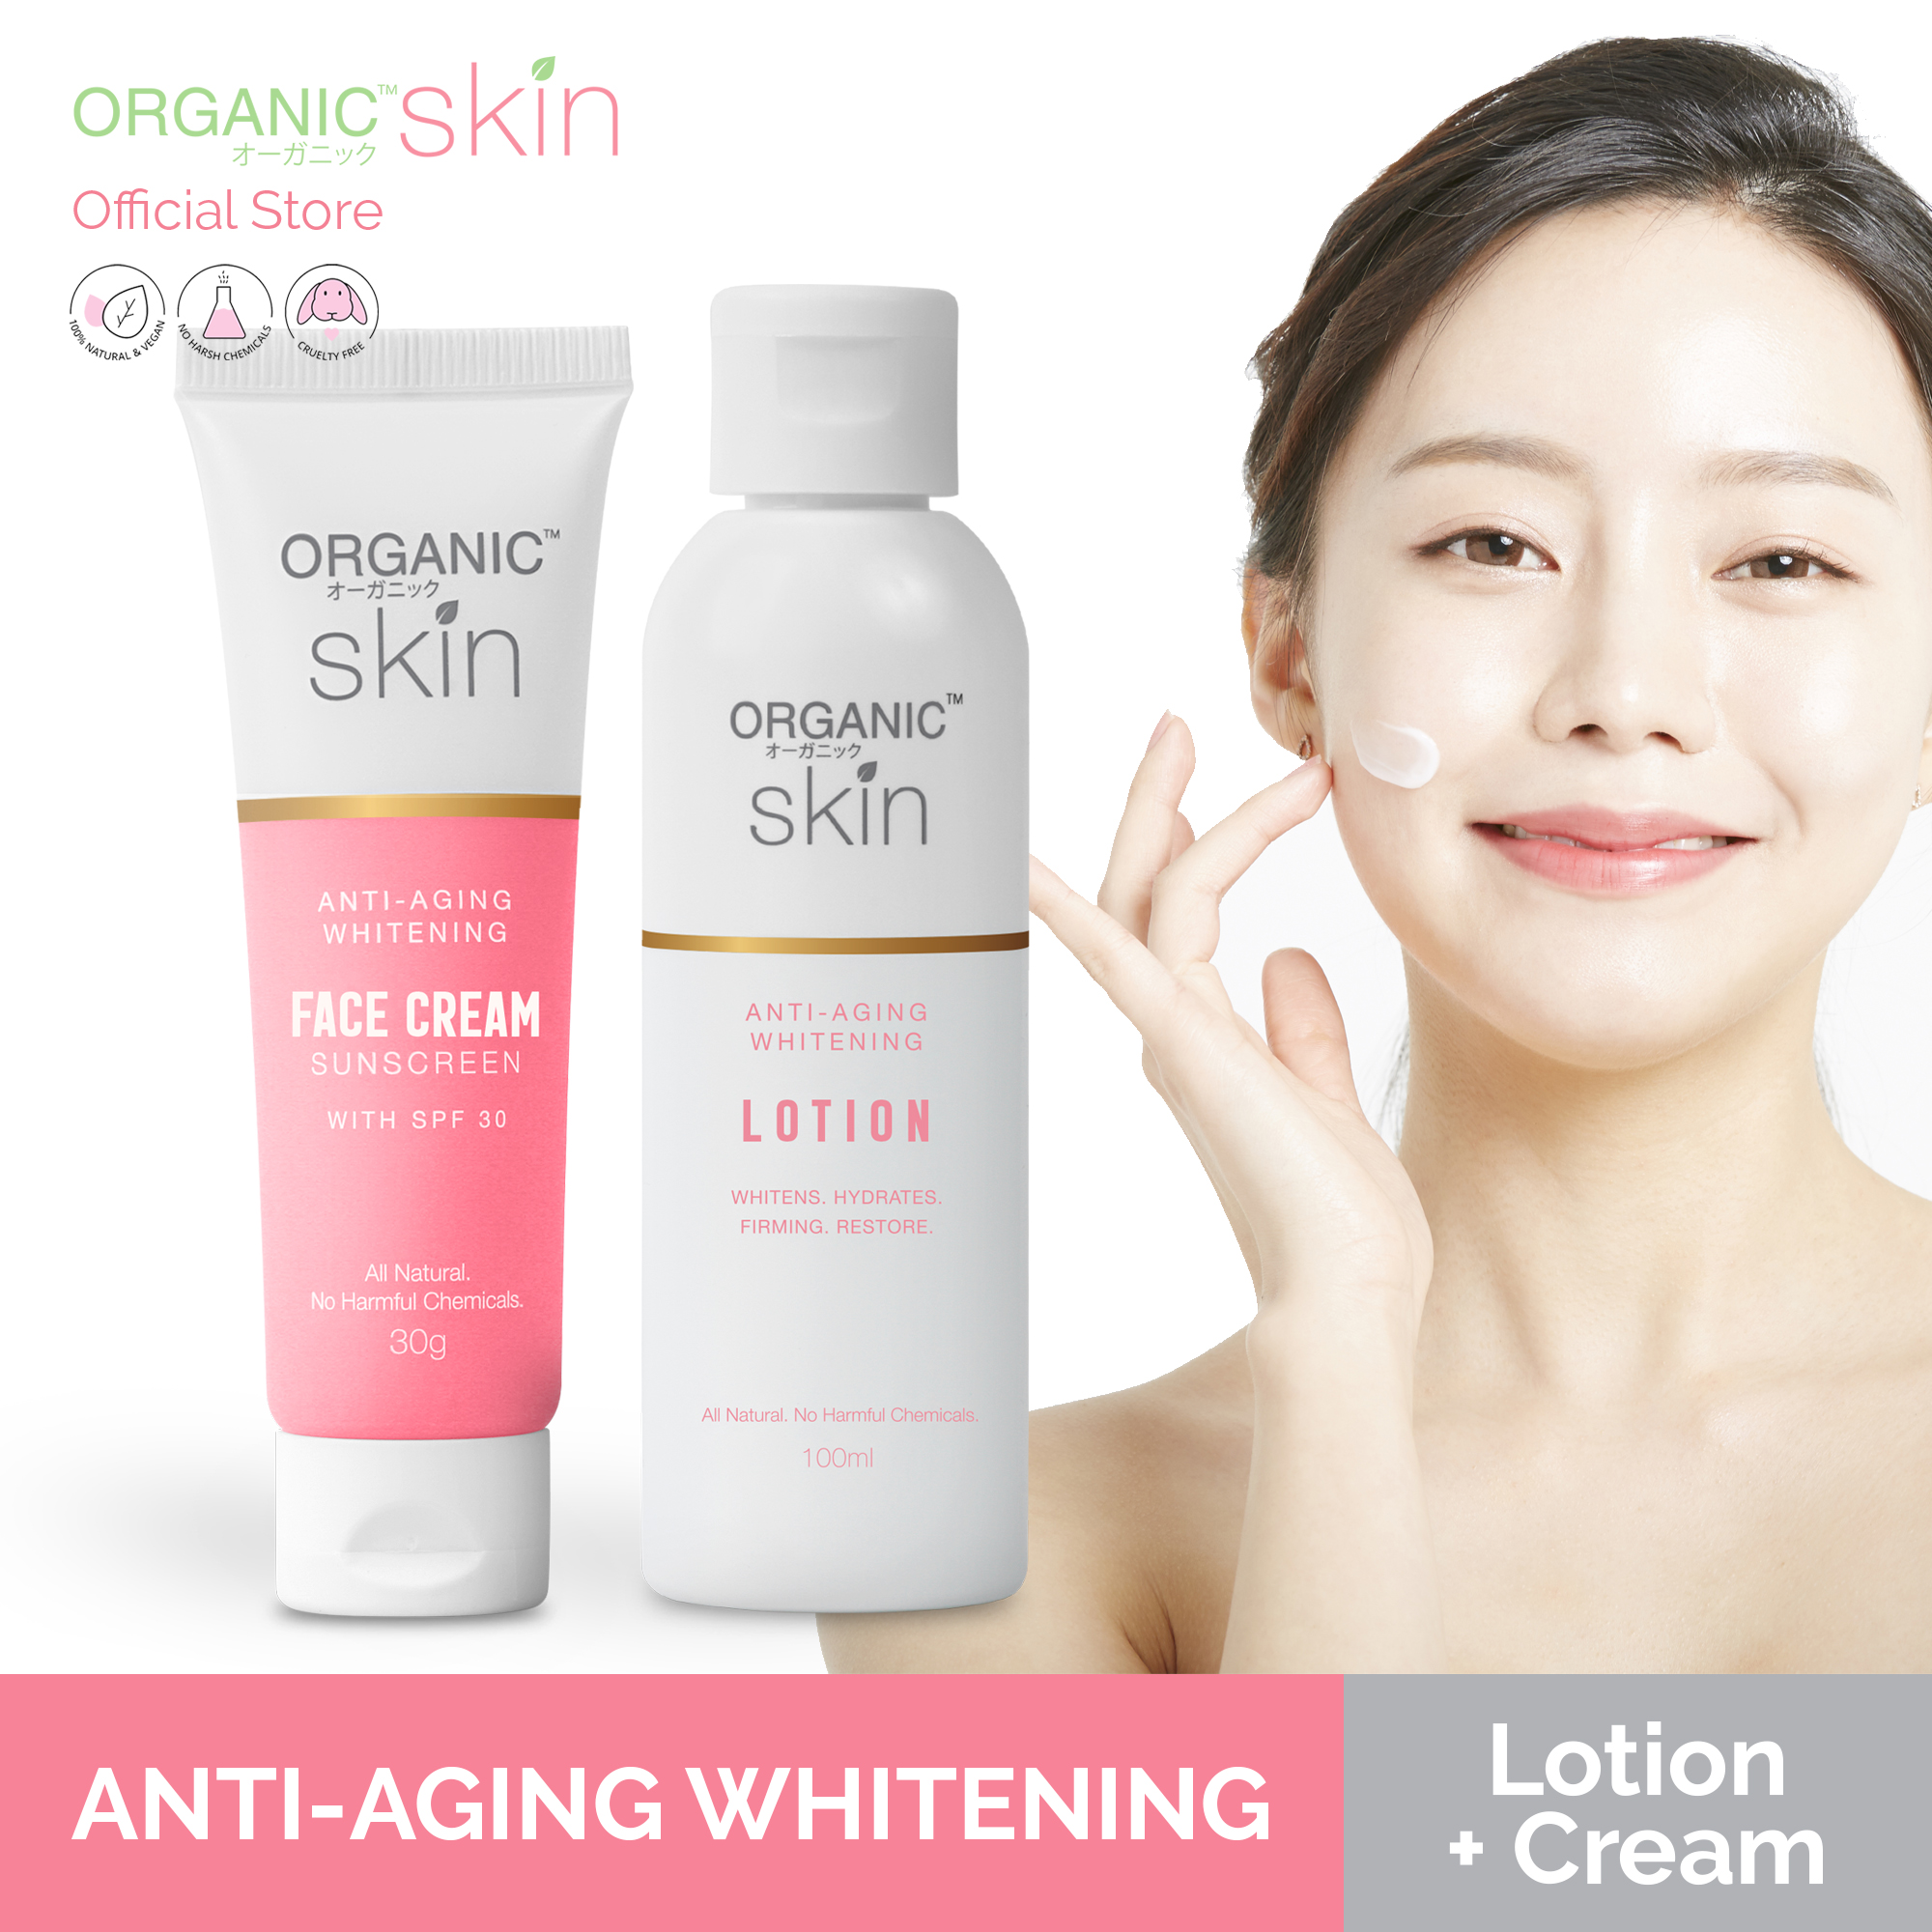 Organic Skin Japan AntiAging Whitening Lotion and Anti Aging Face Cream Sunscreen with SPF30 Bundle